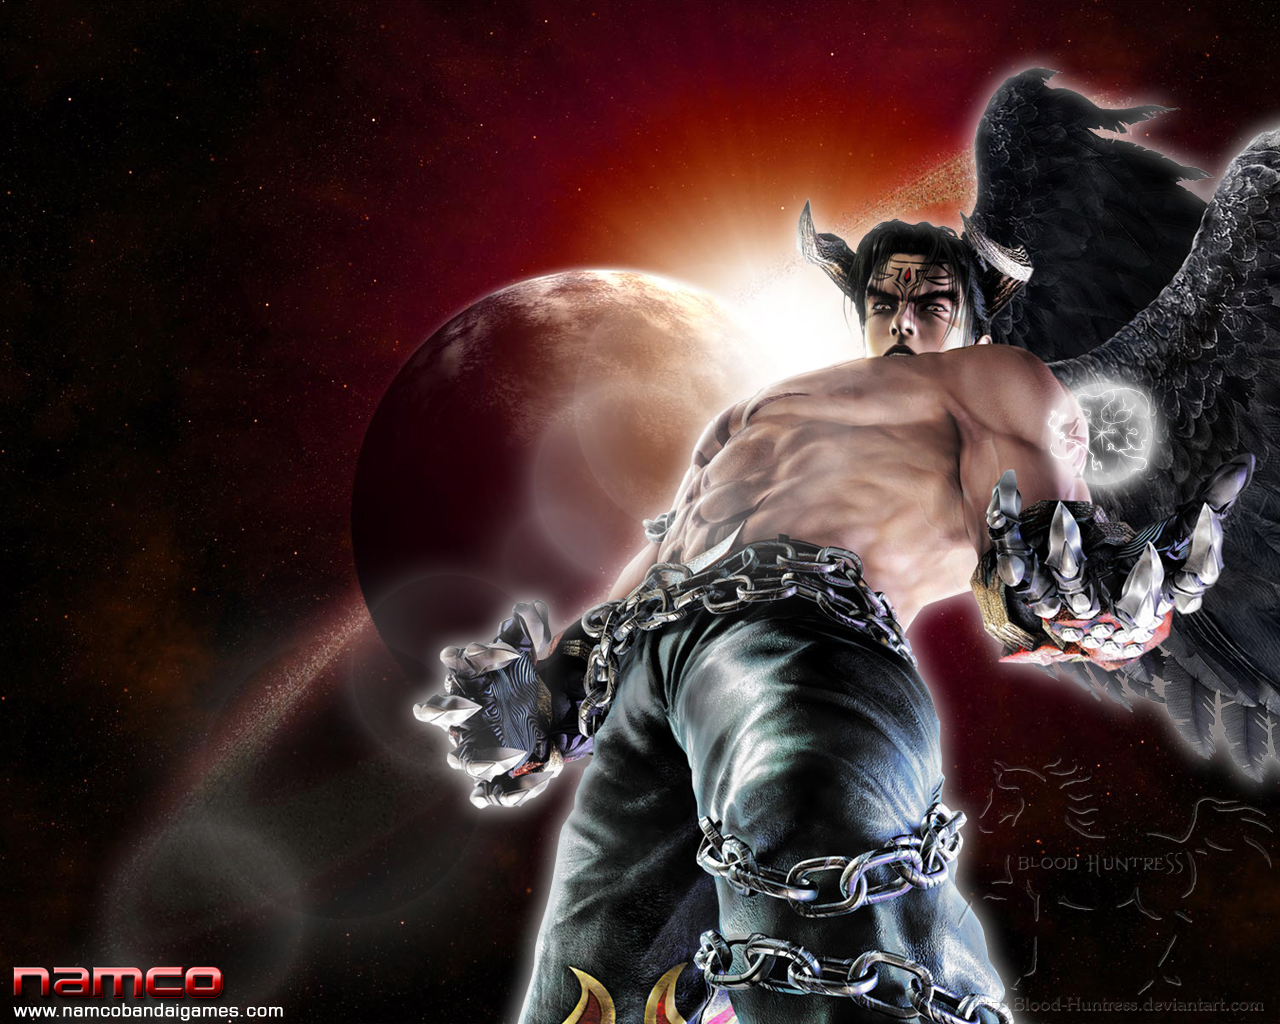 devil jin in tekken 5 drblood-huntress on deviantart